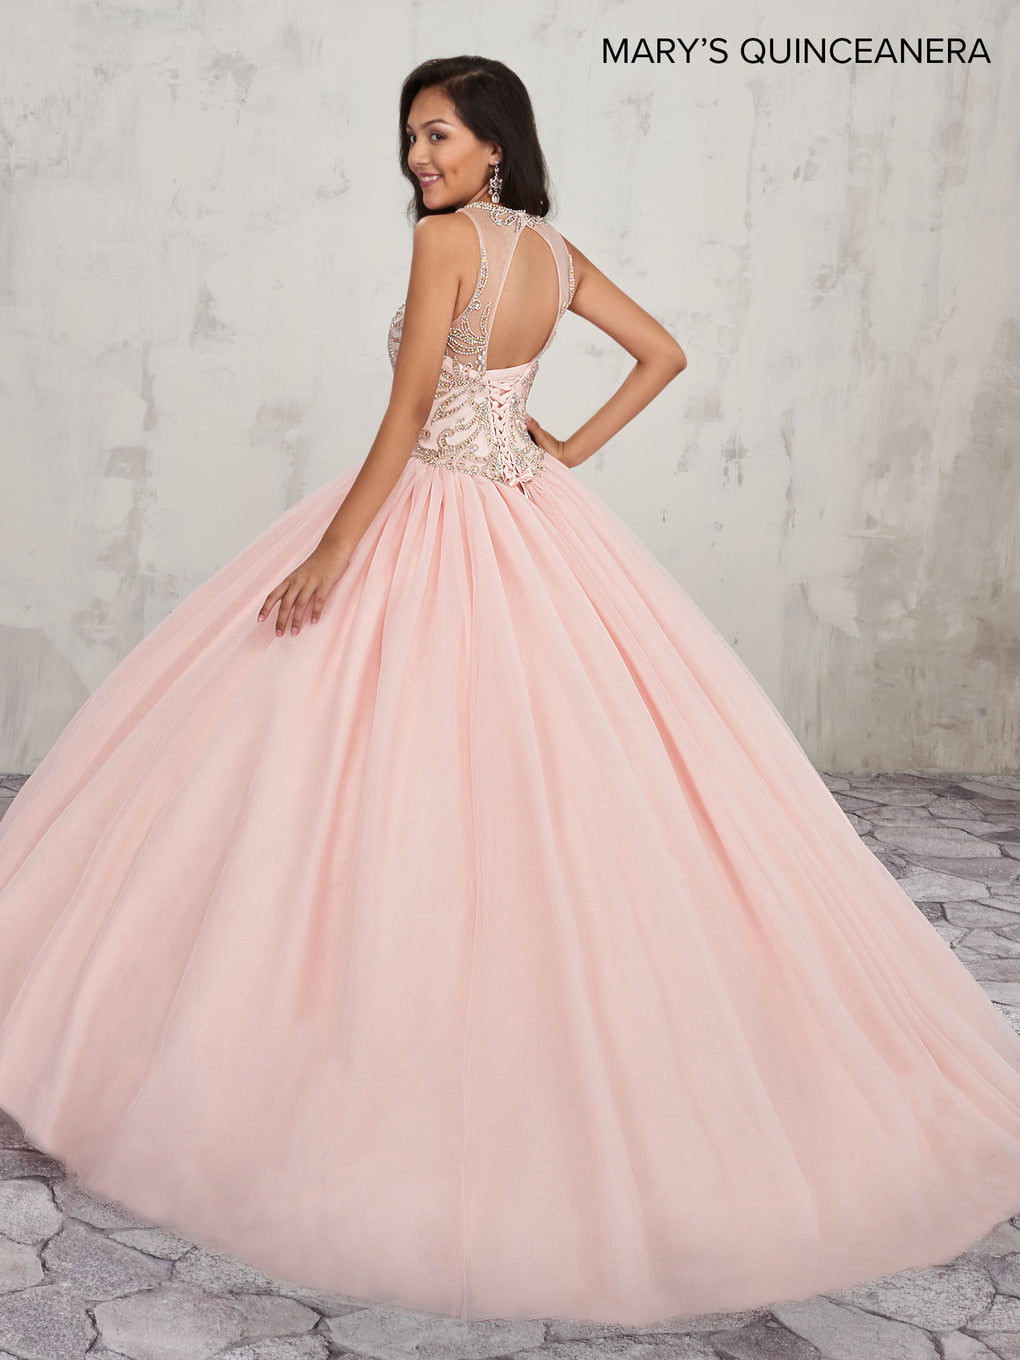 Marys Quinceanera Dresses in Blush or White Color